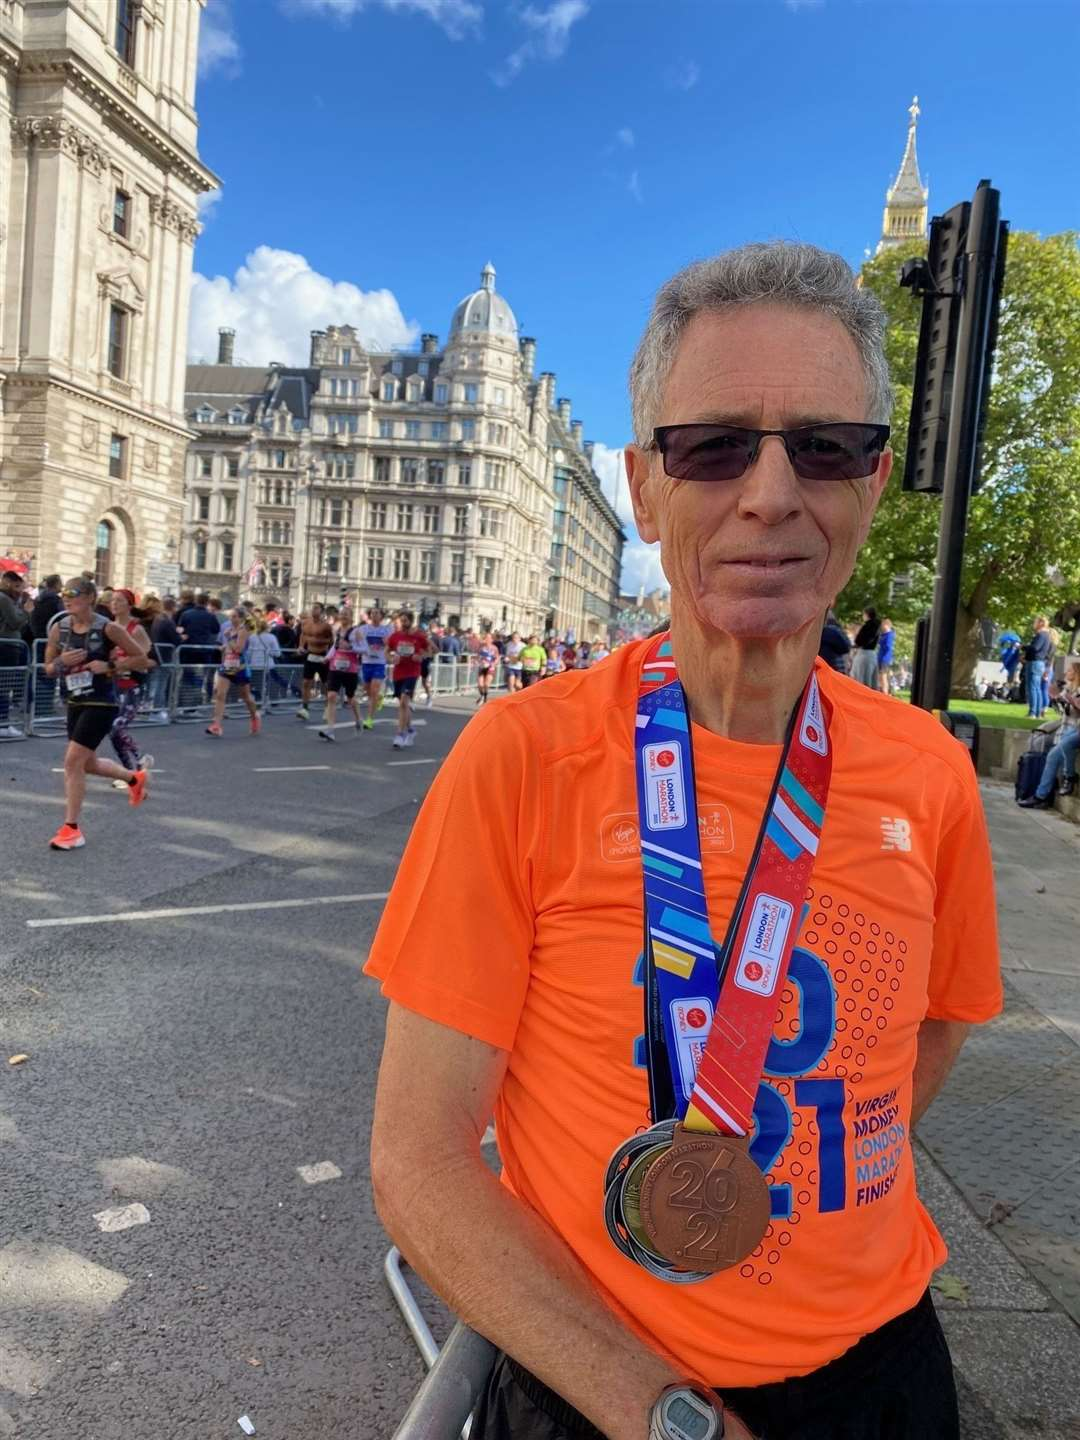 Mike Sheridan became the first Briton over 70 to complete a marathon in less than 3 hours